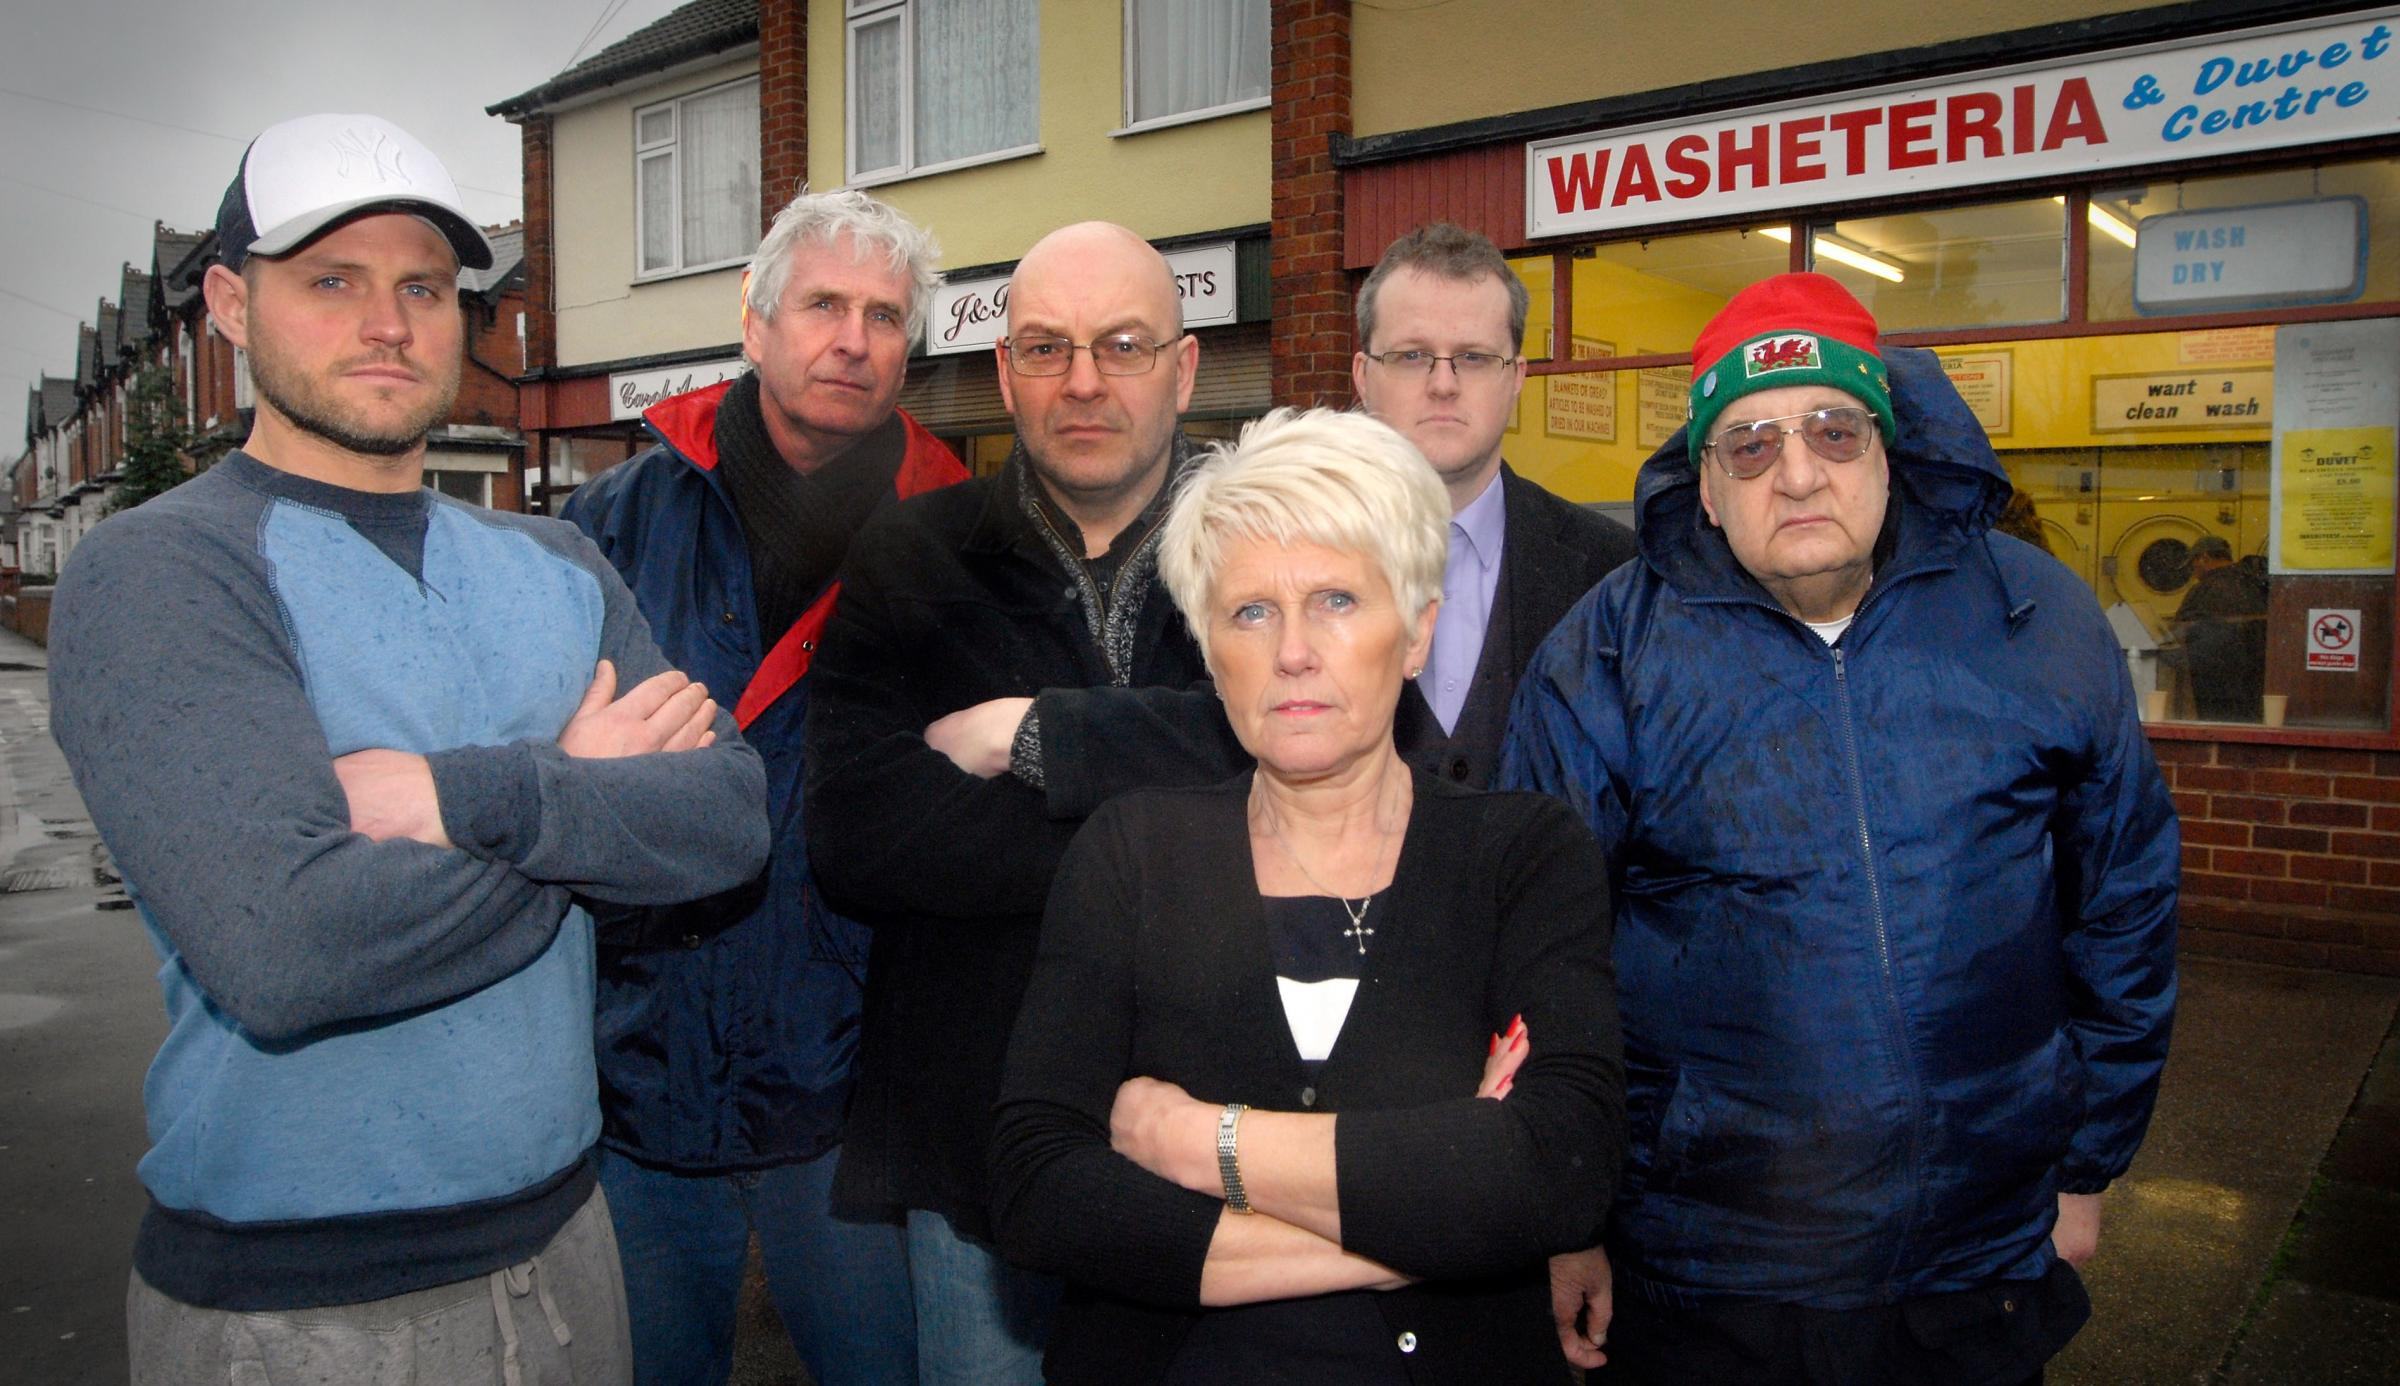 Angry traders - Jason Hampton (J&R Gents Stylists), Richard Dowen (Washeteria & Duvet Centre), Graham Lench (GLC Video), Carol-Ann Perks (Carol Anns Hair Studio), Stuart Millward (House of Magic UK), John Stephens (Stephens Carpet Warehouse). Pic: 071432L